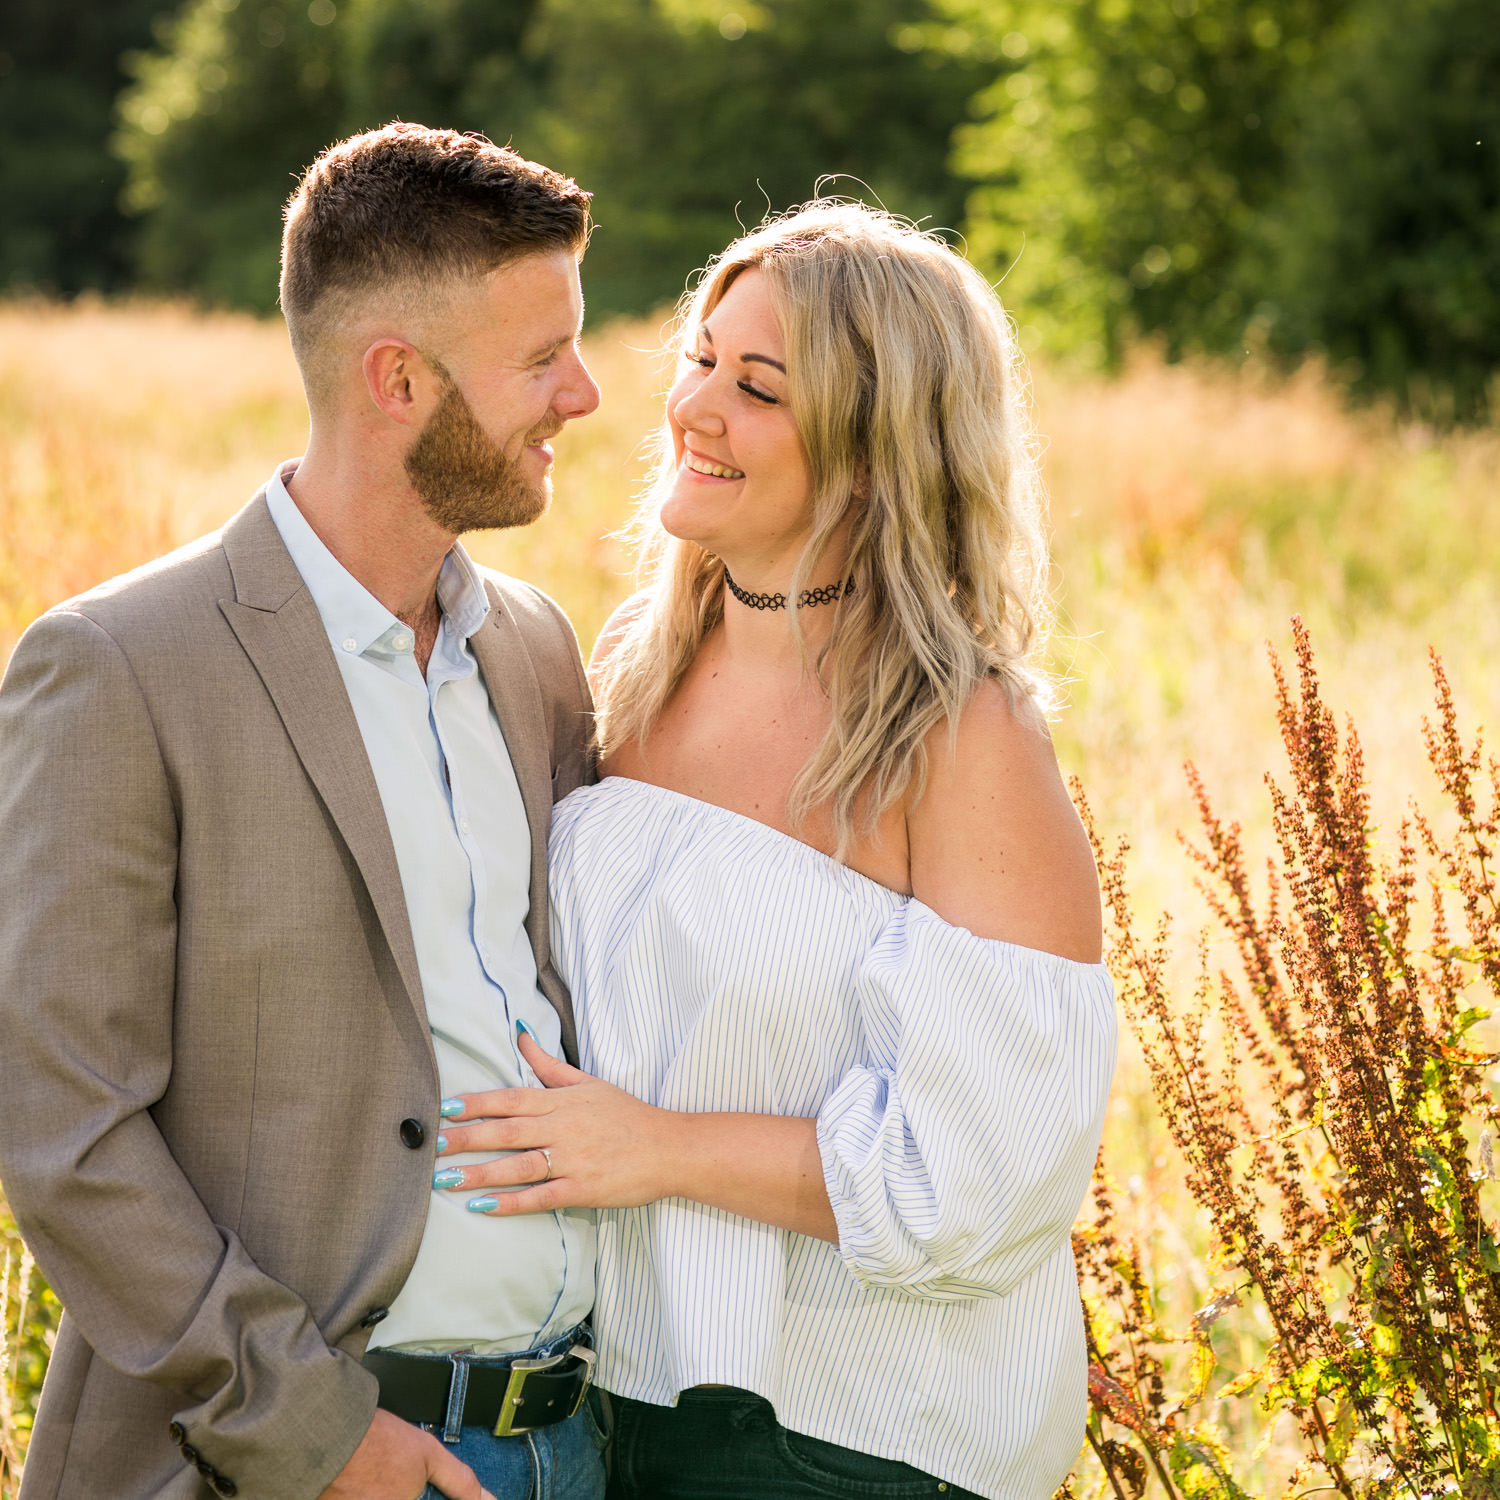 engagement pre wedding photo plessey woods